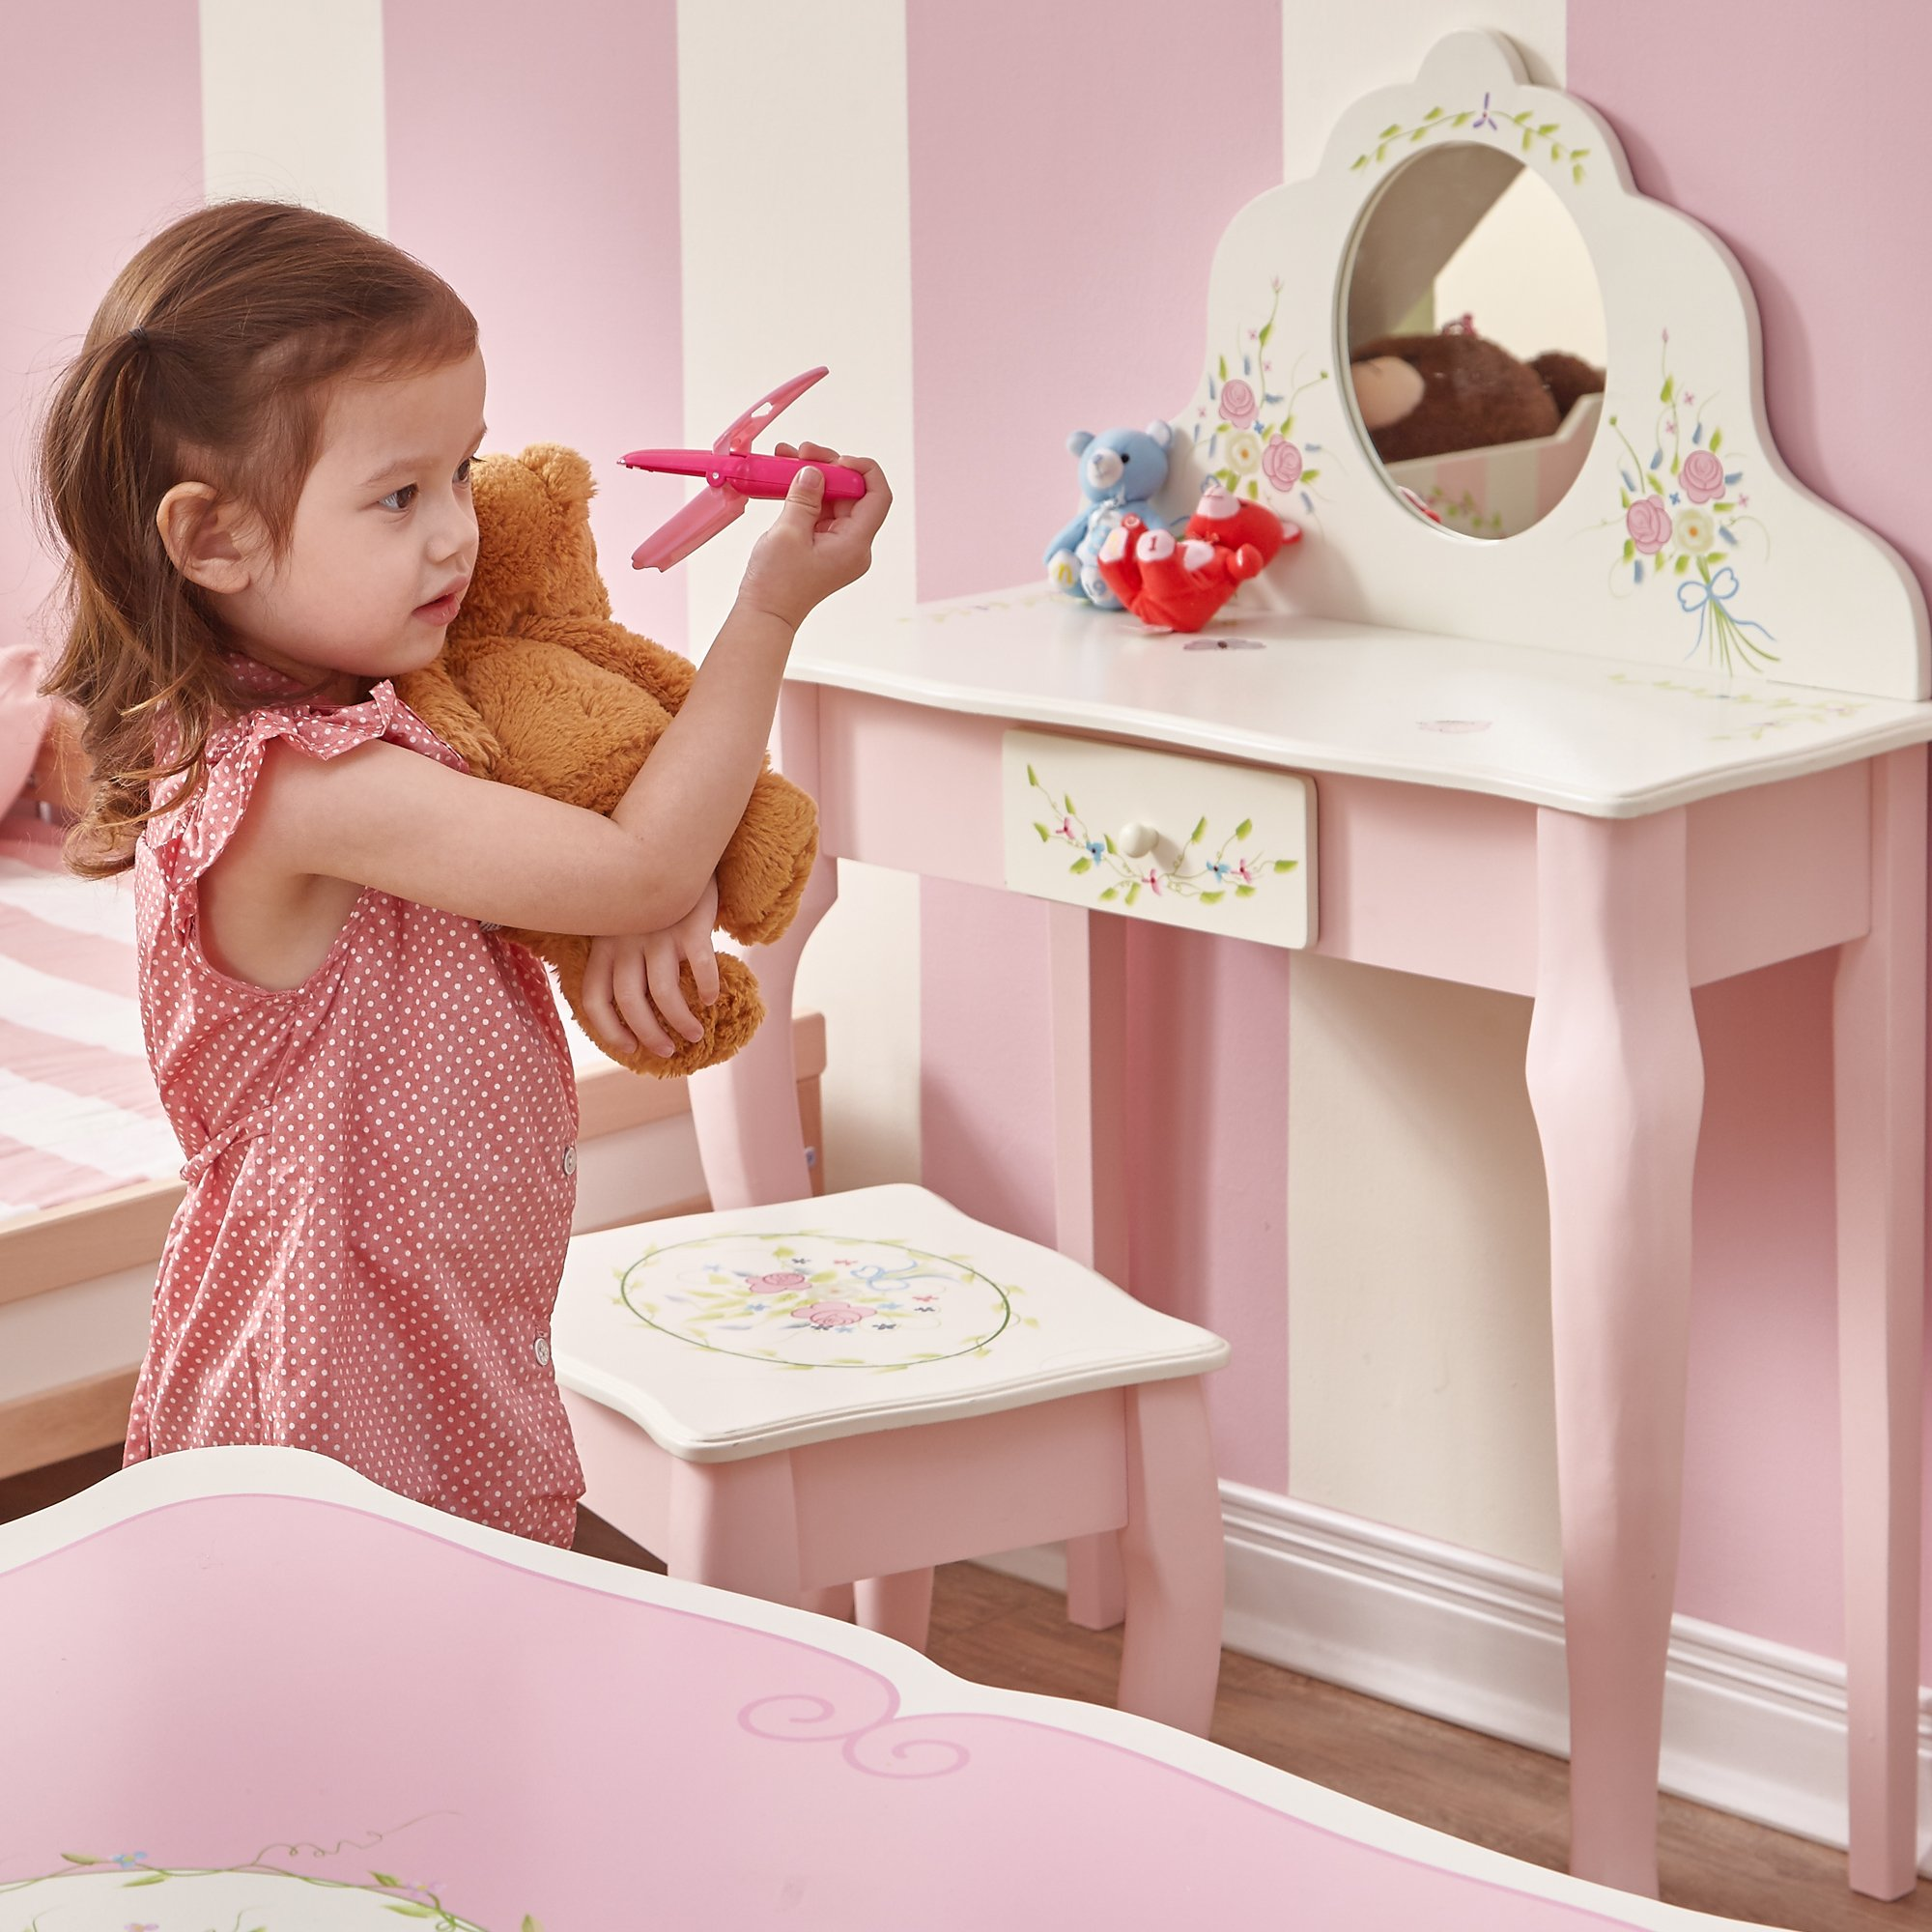 Fantasy Fields - Bouquet Thematic Kids Classic Vanity Table and Stool Set with Mirror   Imagination Inspiring Hand Crafted & Hand Painted Details   Non-Toxic, Lead Free Water-based Paint by Teamson Design Corp (Image #3)